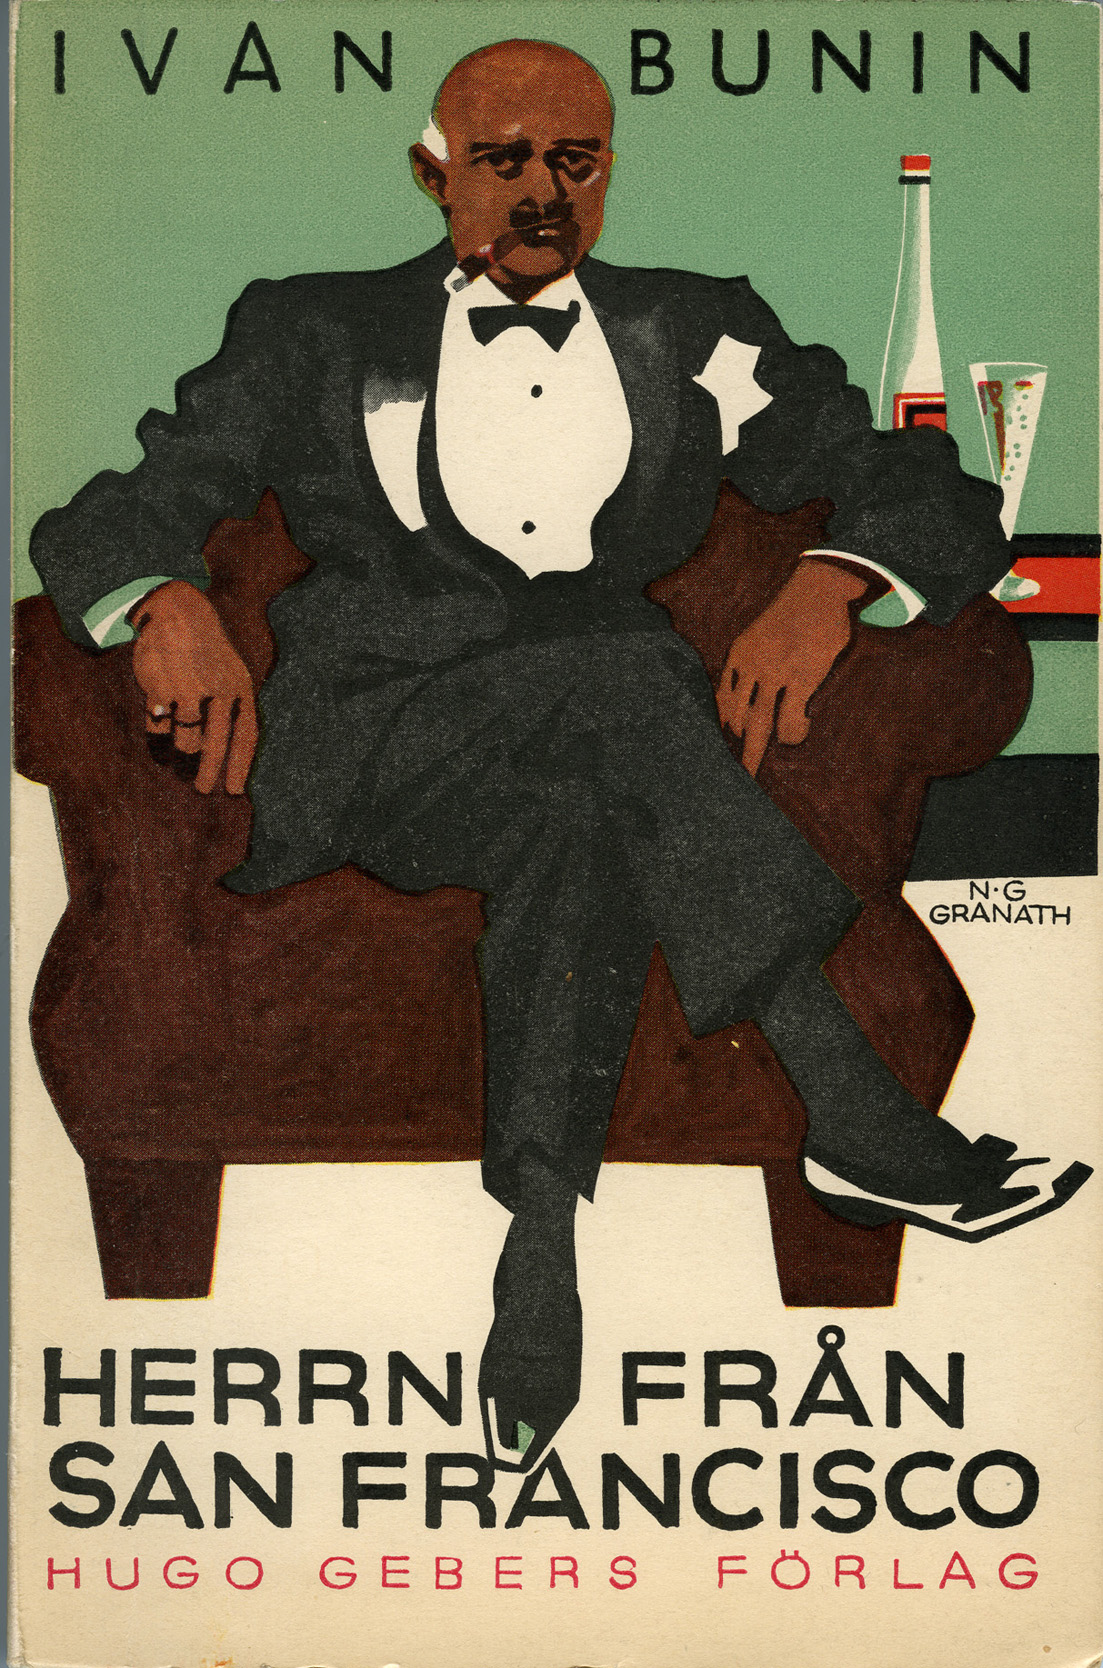 Depiction of Ivan Bunin, Herrn Fran San Francisco